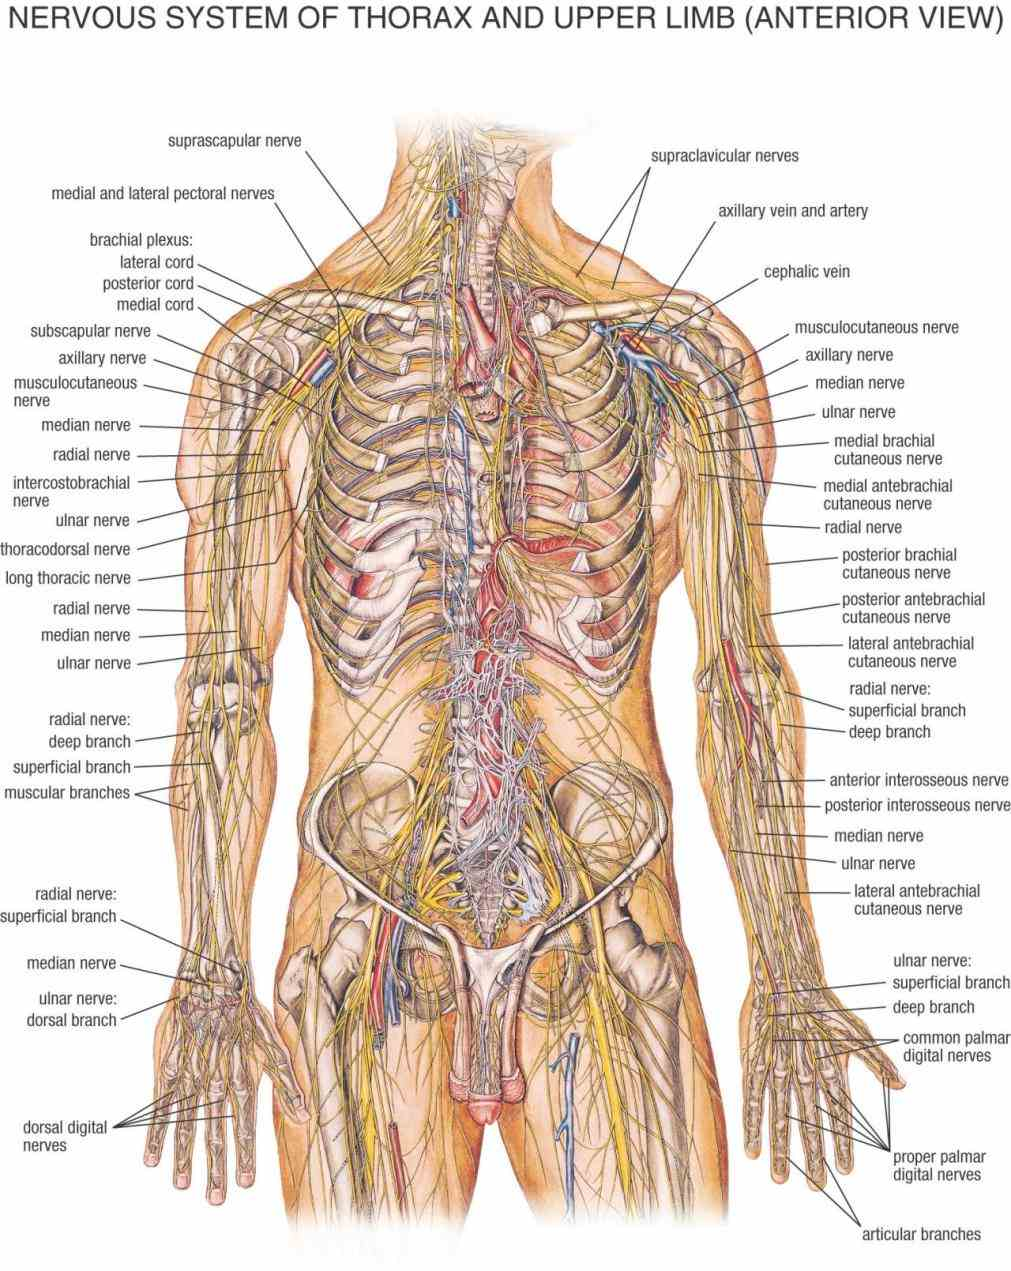 to begin skeletal with hundreds of interactive pictures and descriptions thousands objects in the body human Image Of Human